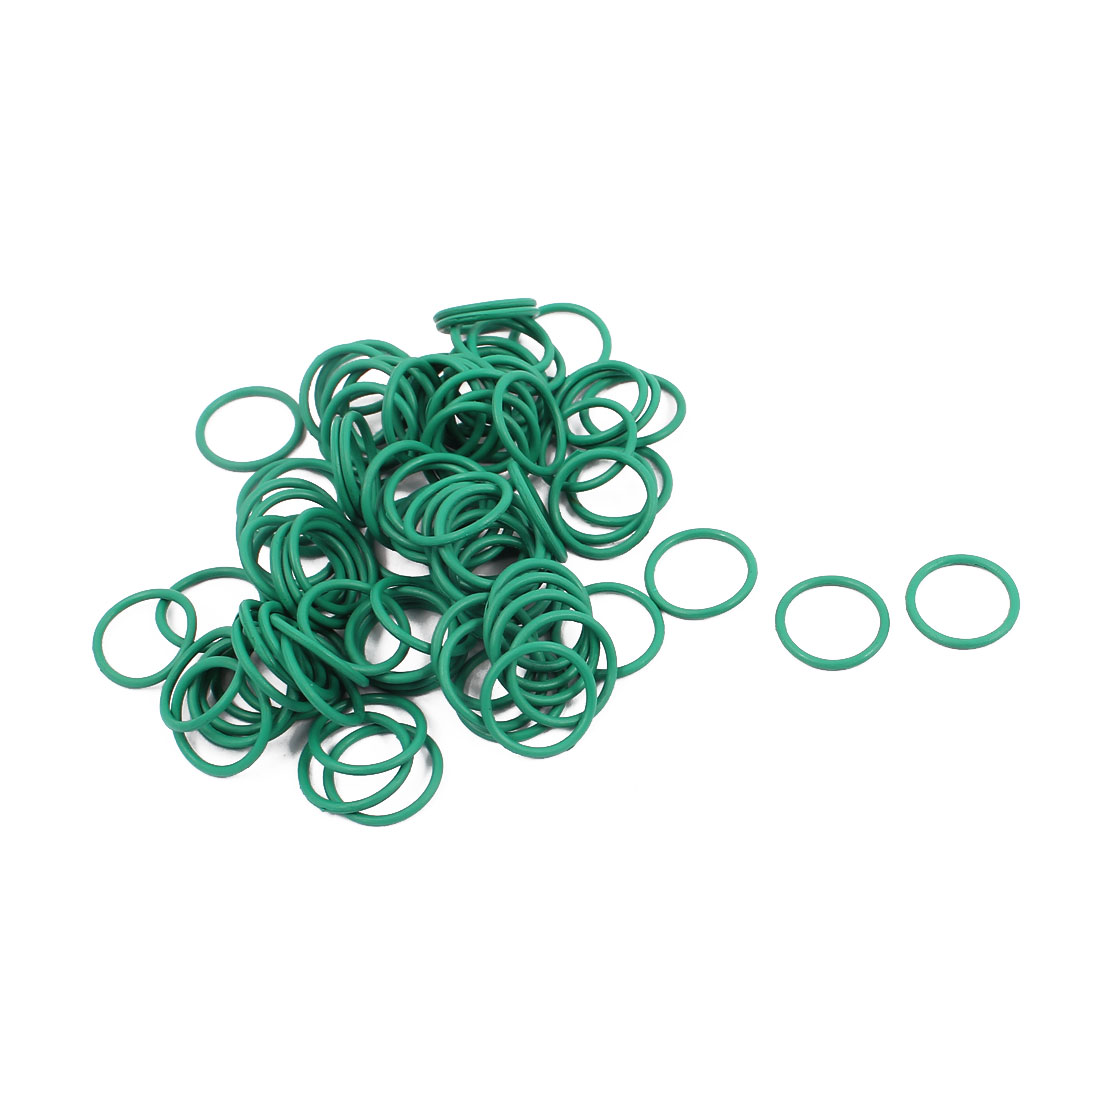 100Pcs 11mm x 1mm FKM O-rings Heat Resistant Sealing Ring Grommets Green